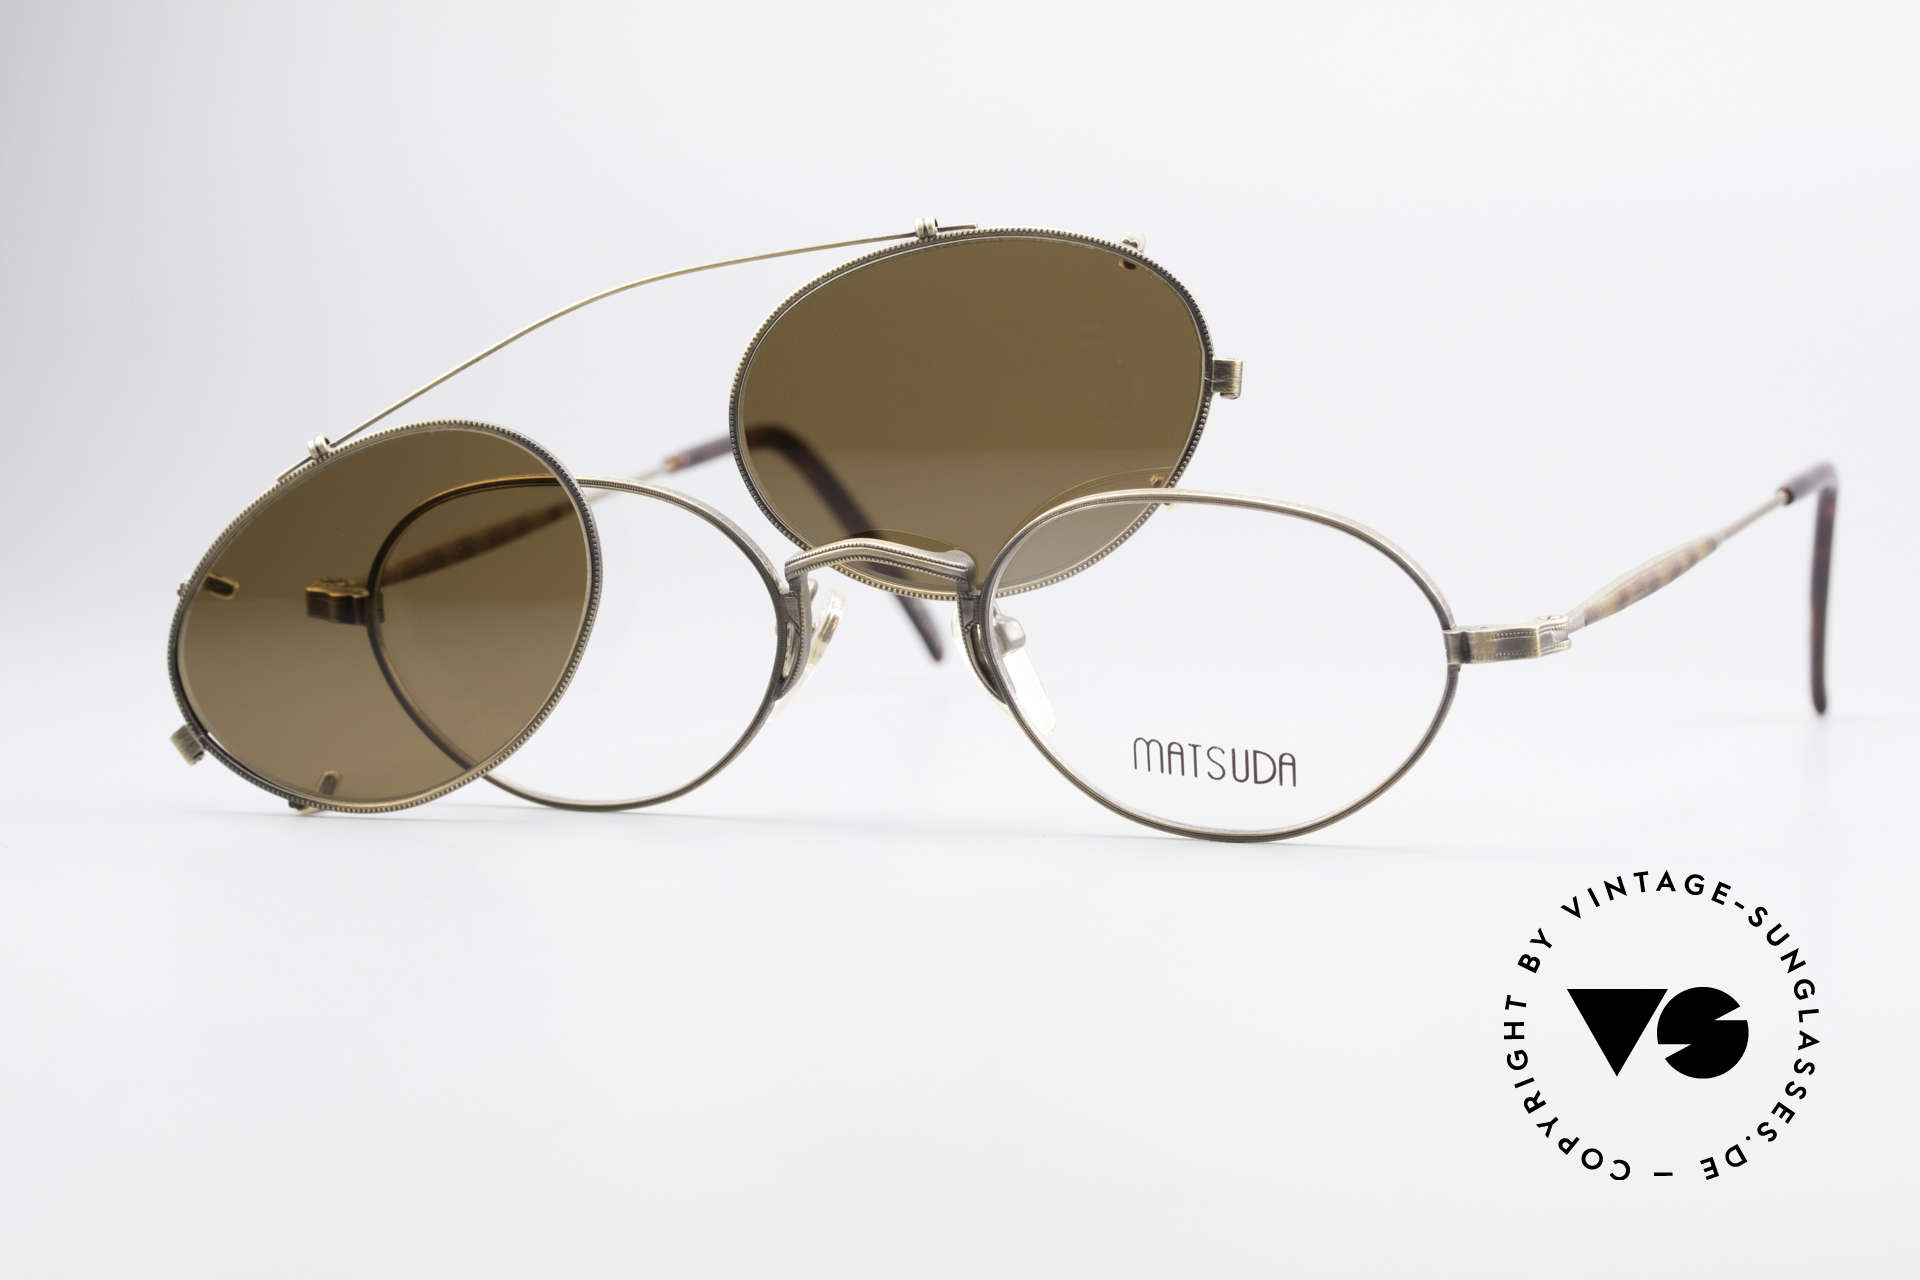 Matsuda 10102 Vintage Steampunk Shades, Size: small, Made for Men